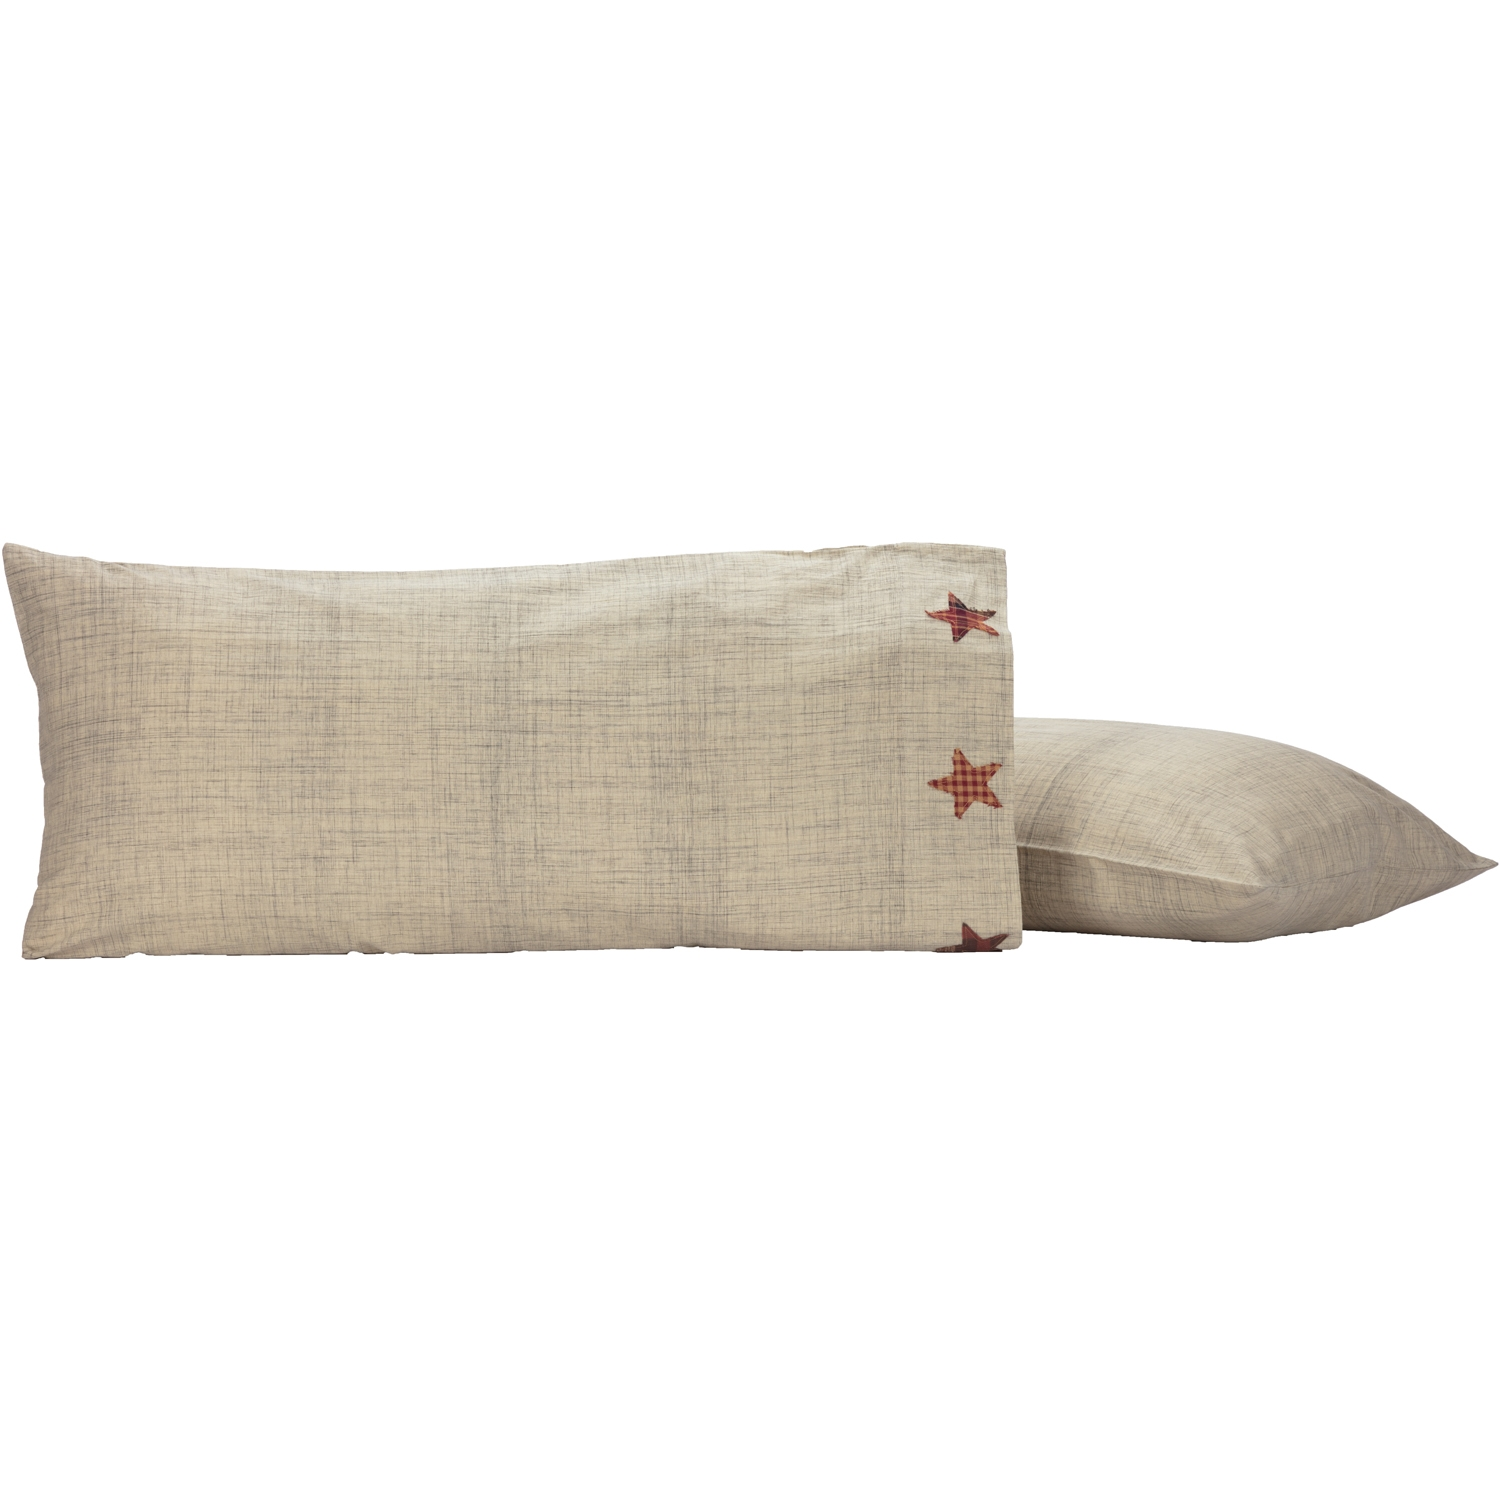 Abilene Star King Pillow Case Set of 2 21x40